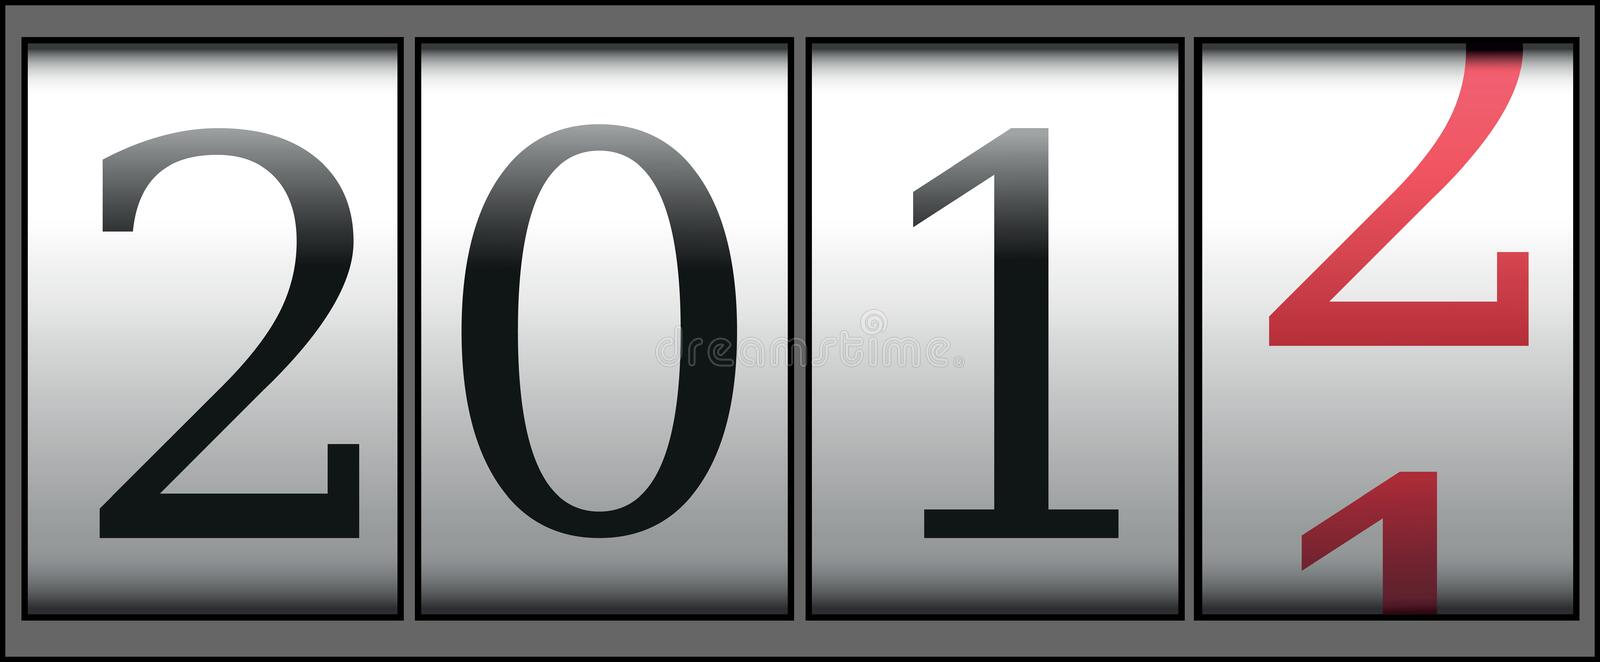 New year counter royalty free stock image